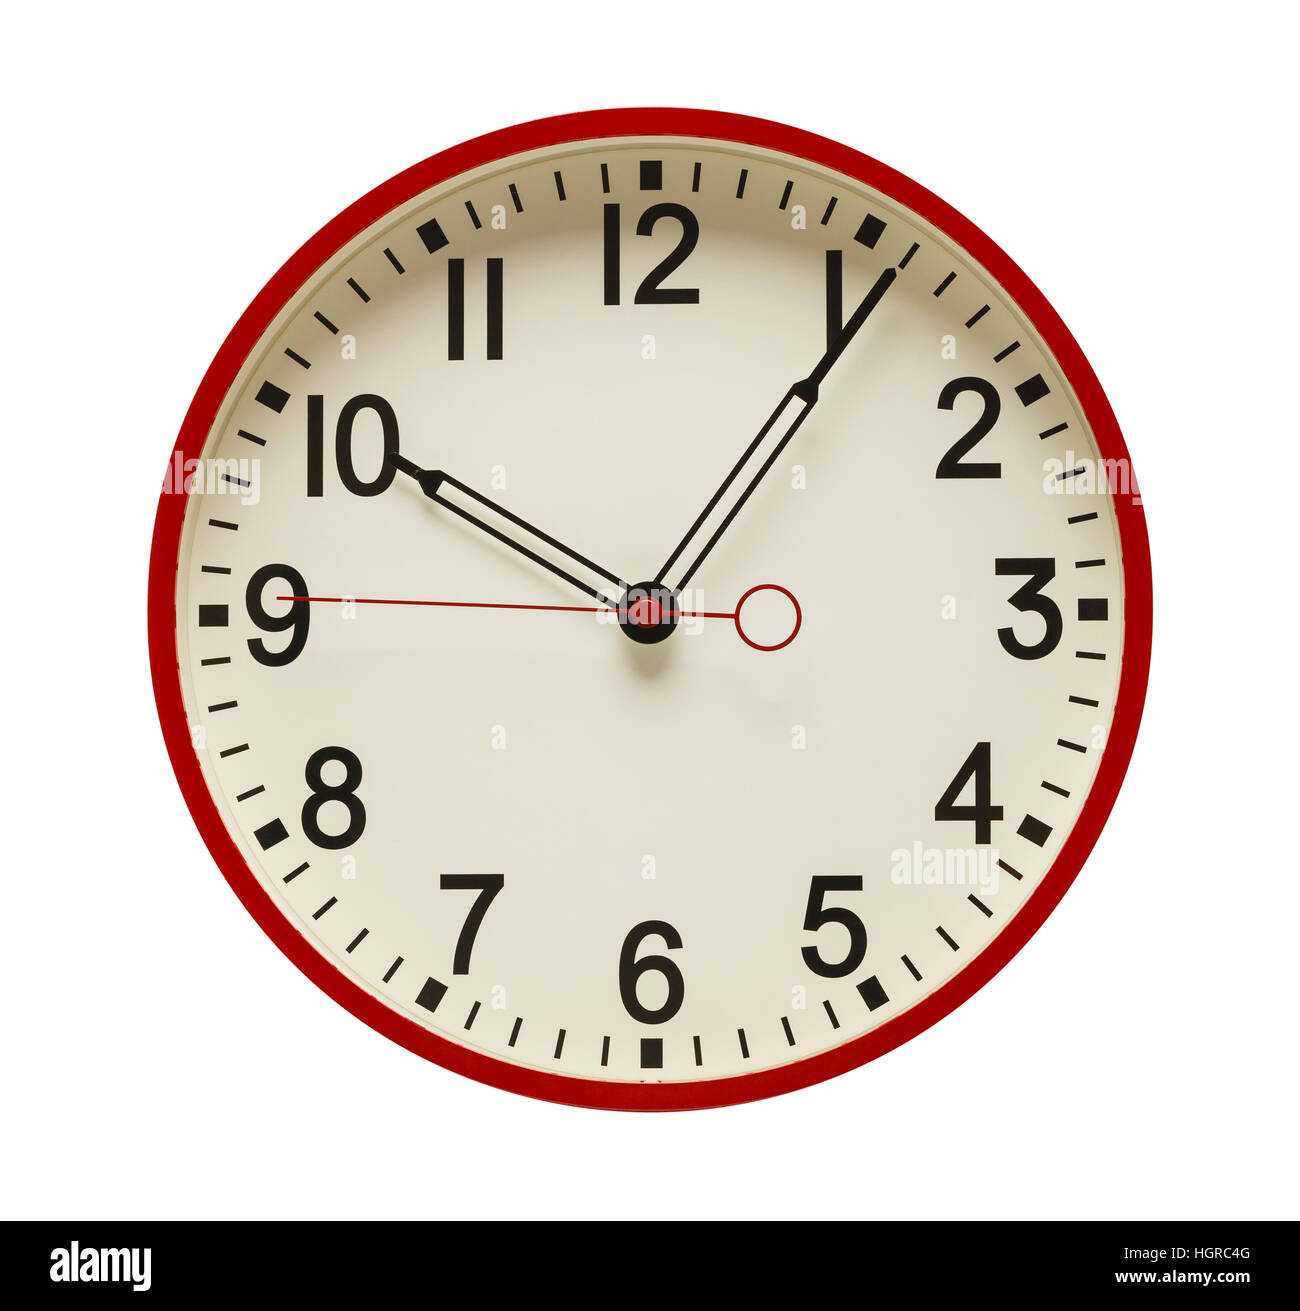 Red Round Dial Wall Clock Isolated on White Background. - Stock Image